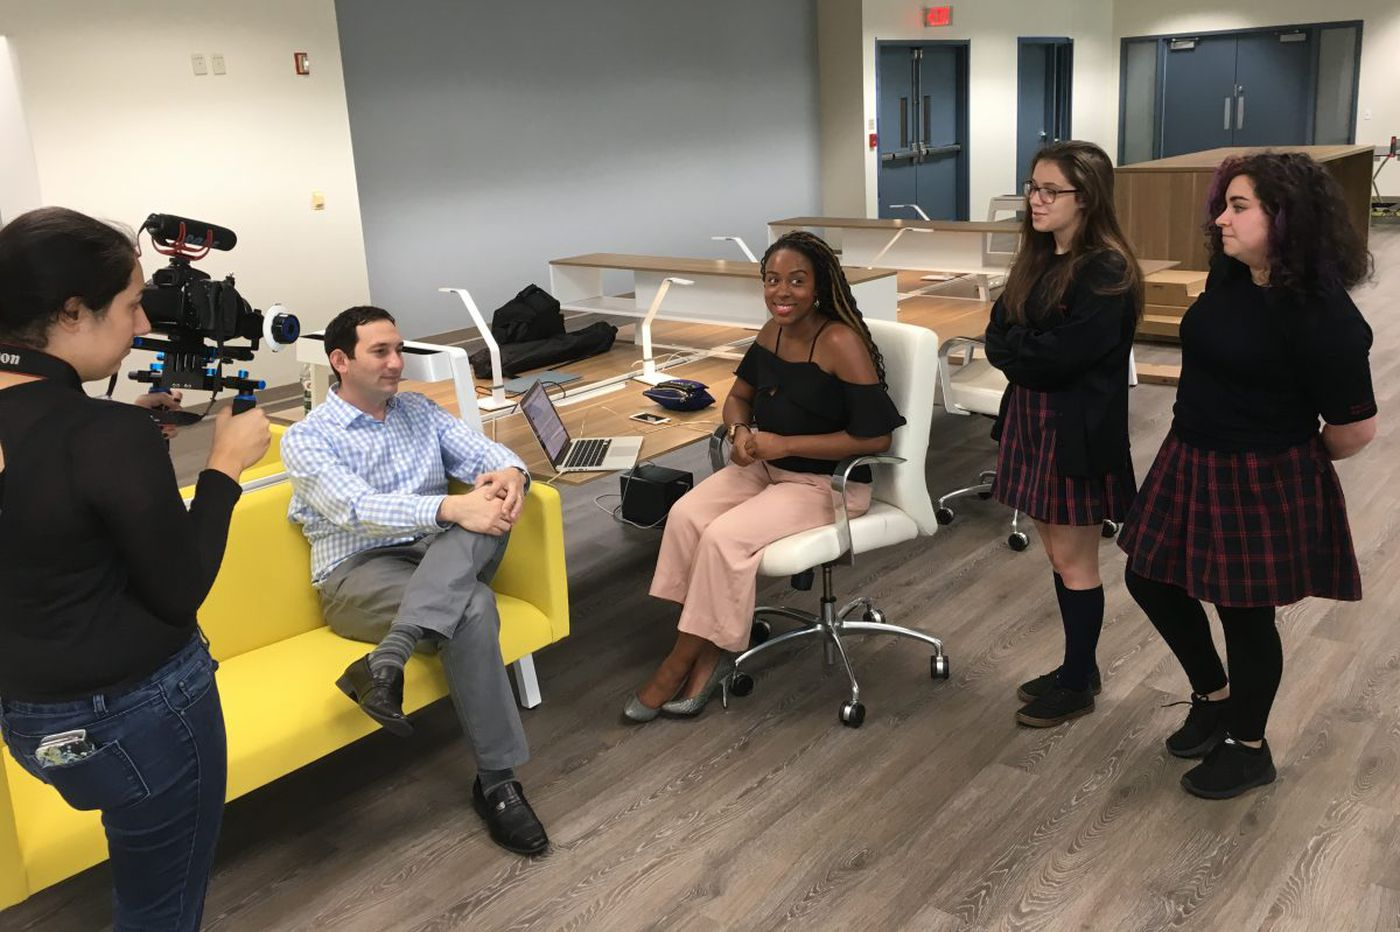 String Theory trades free start-up work spaces for student engagement